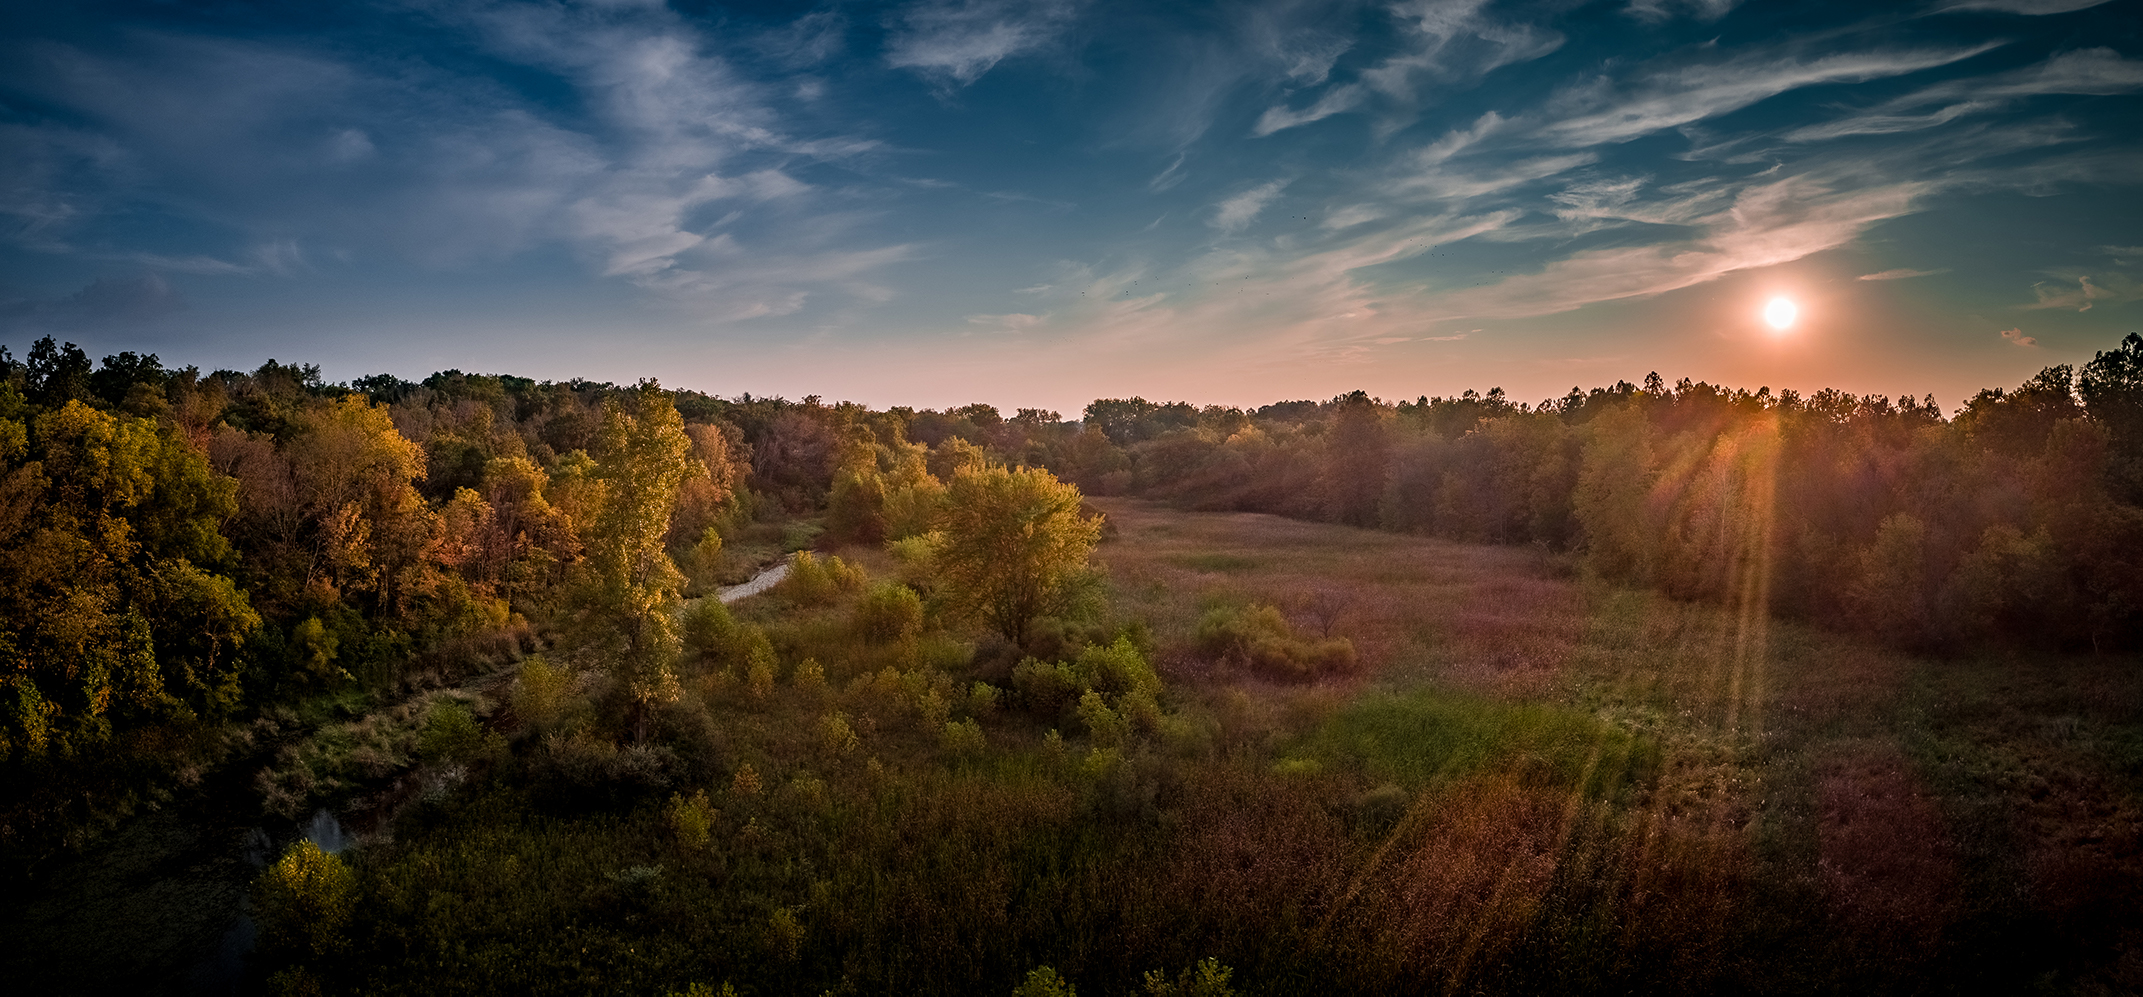 A view of the wetlands in autumn at sunset